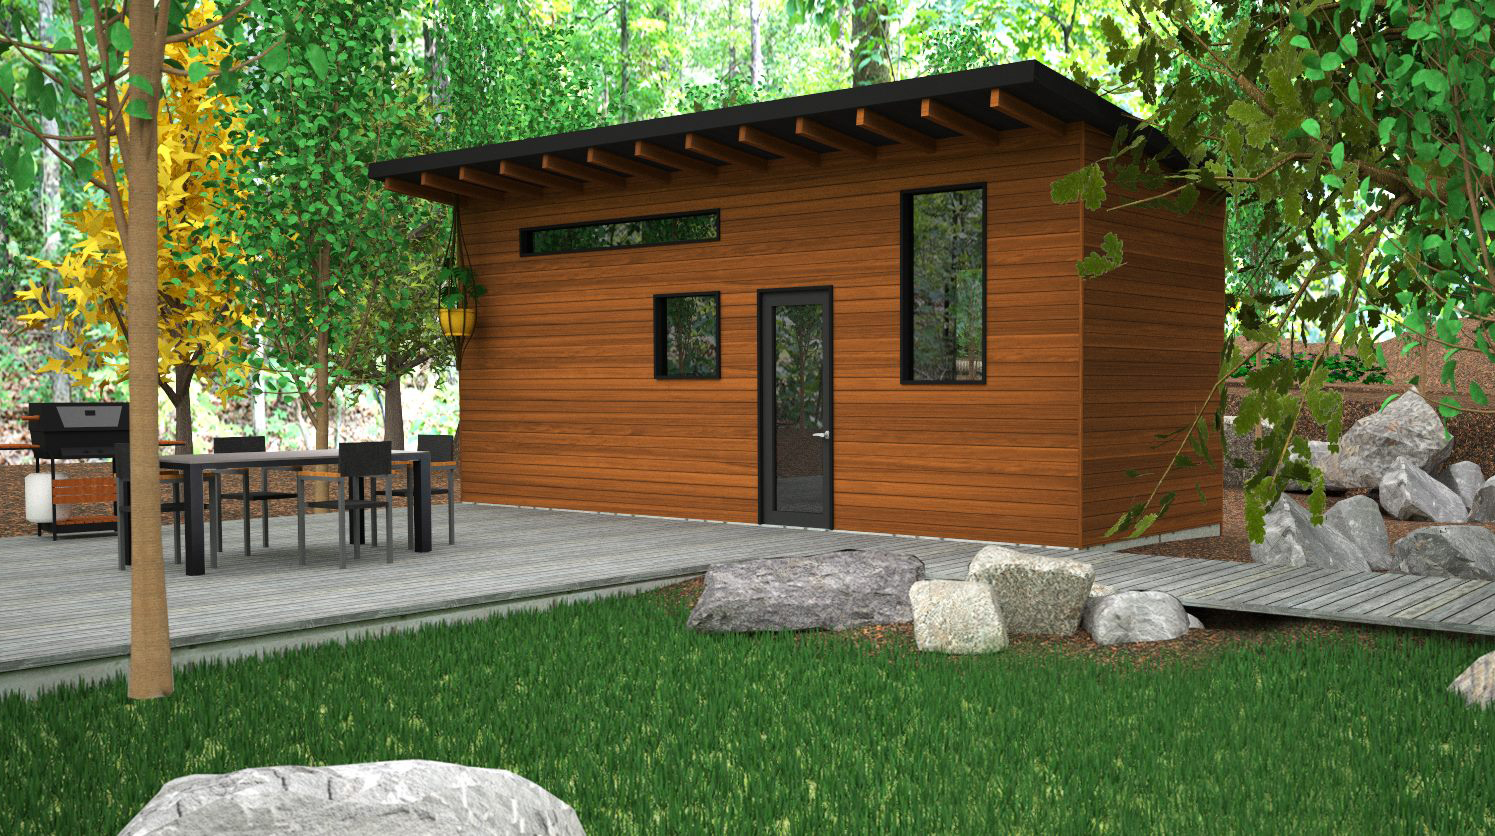 The Atelier Praxis Tiny House By Minimalist - TINY HOUSE TOWN